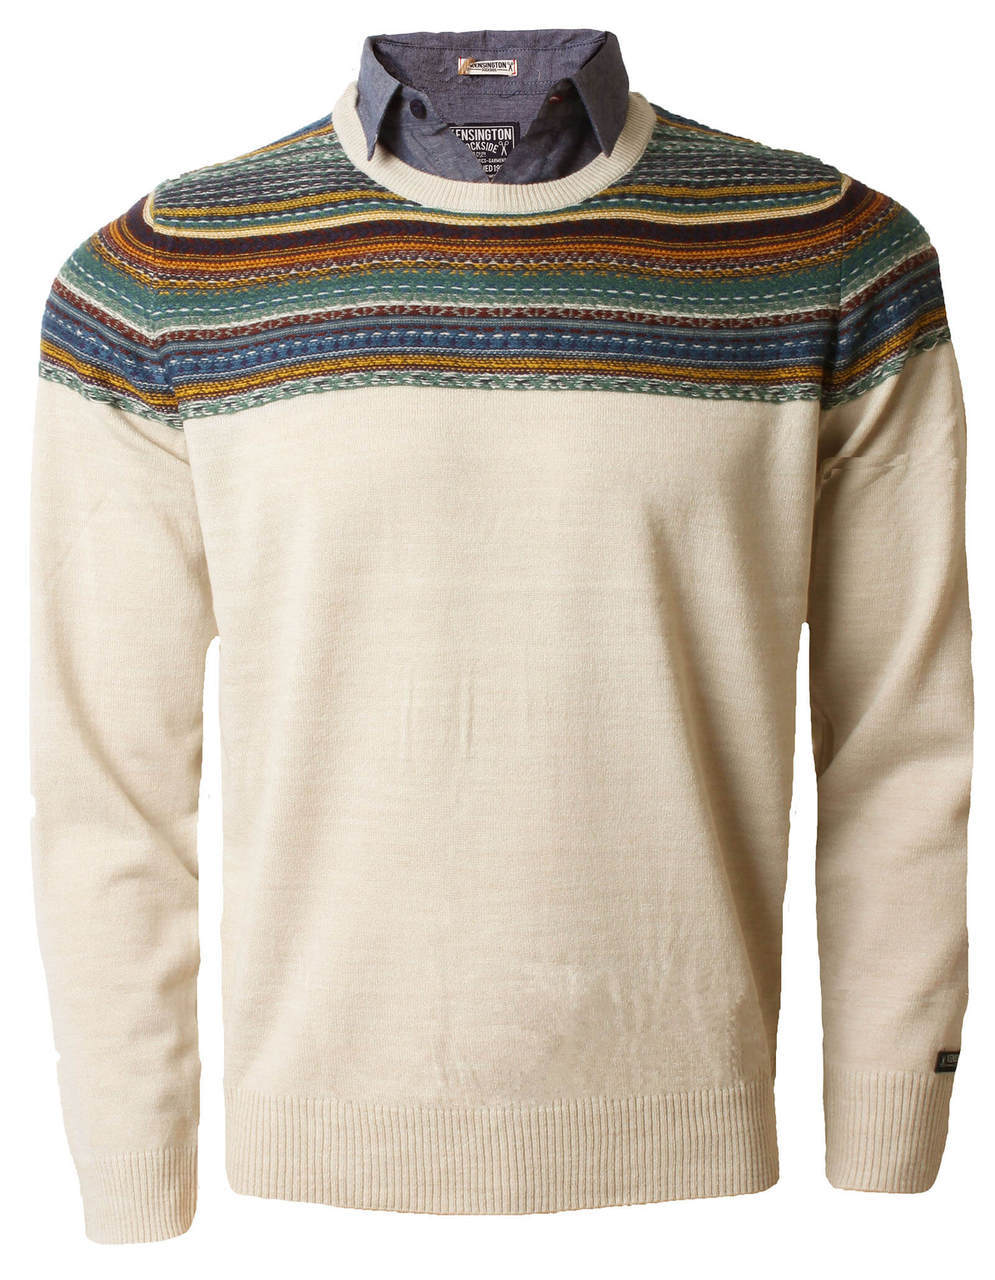 Kensington inserted shirt collar crew neck jumper oatgrey for Crew neck sweater with collared shirt